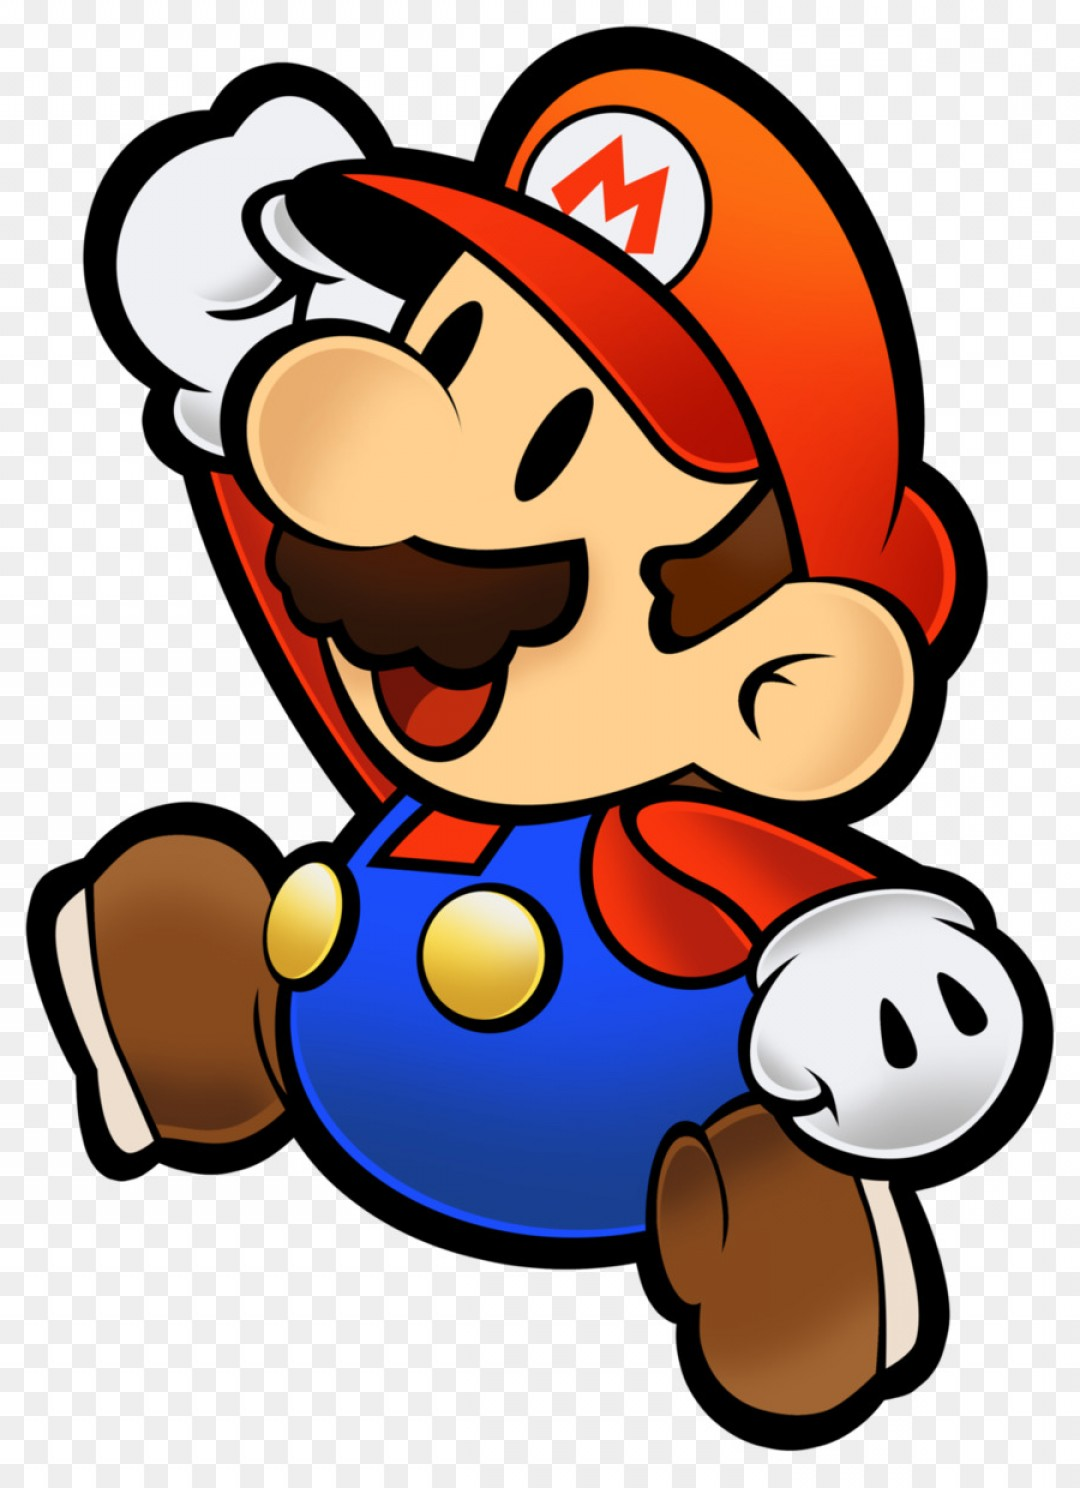 Mario Head Png (33+ images).